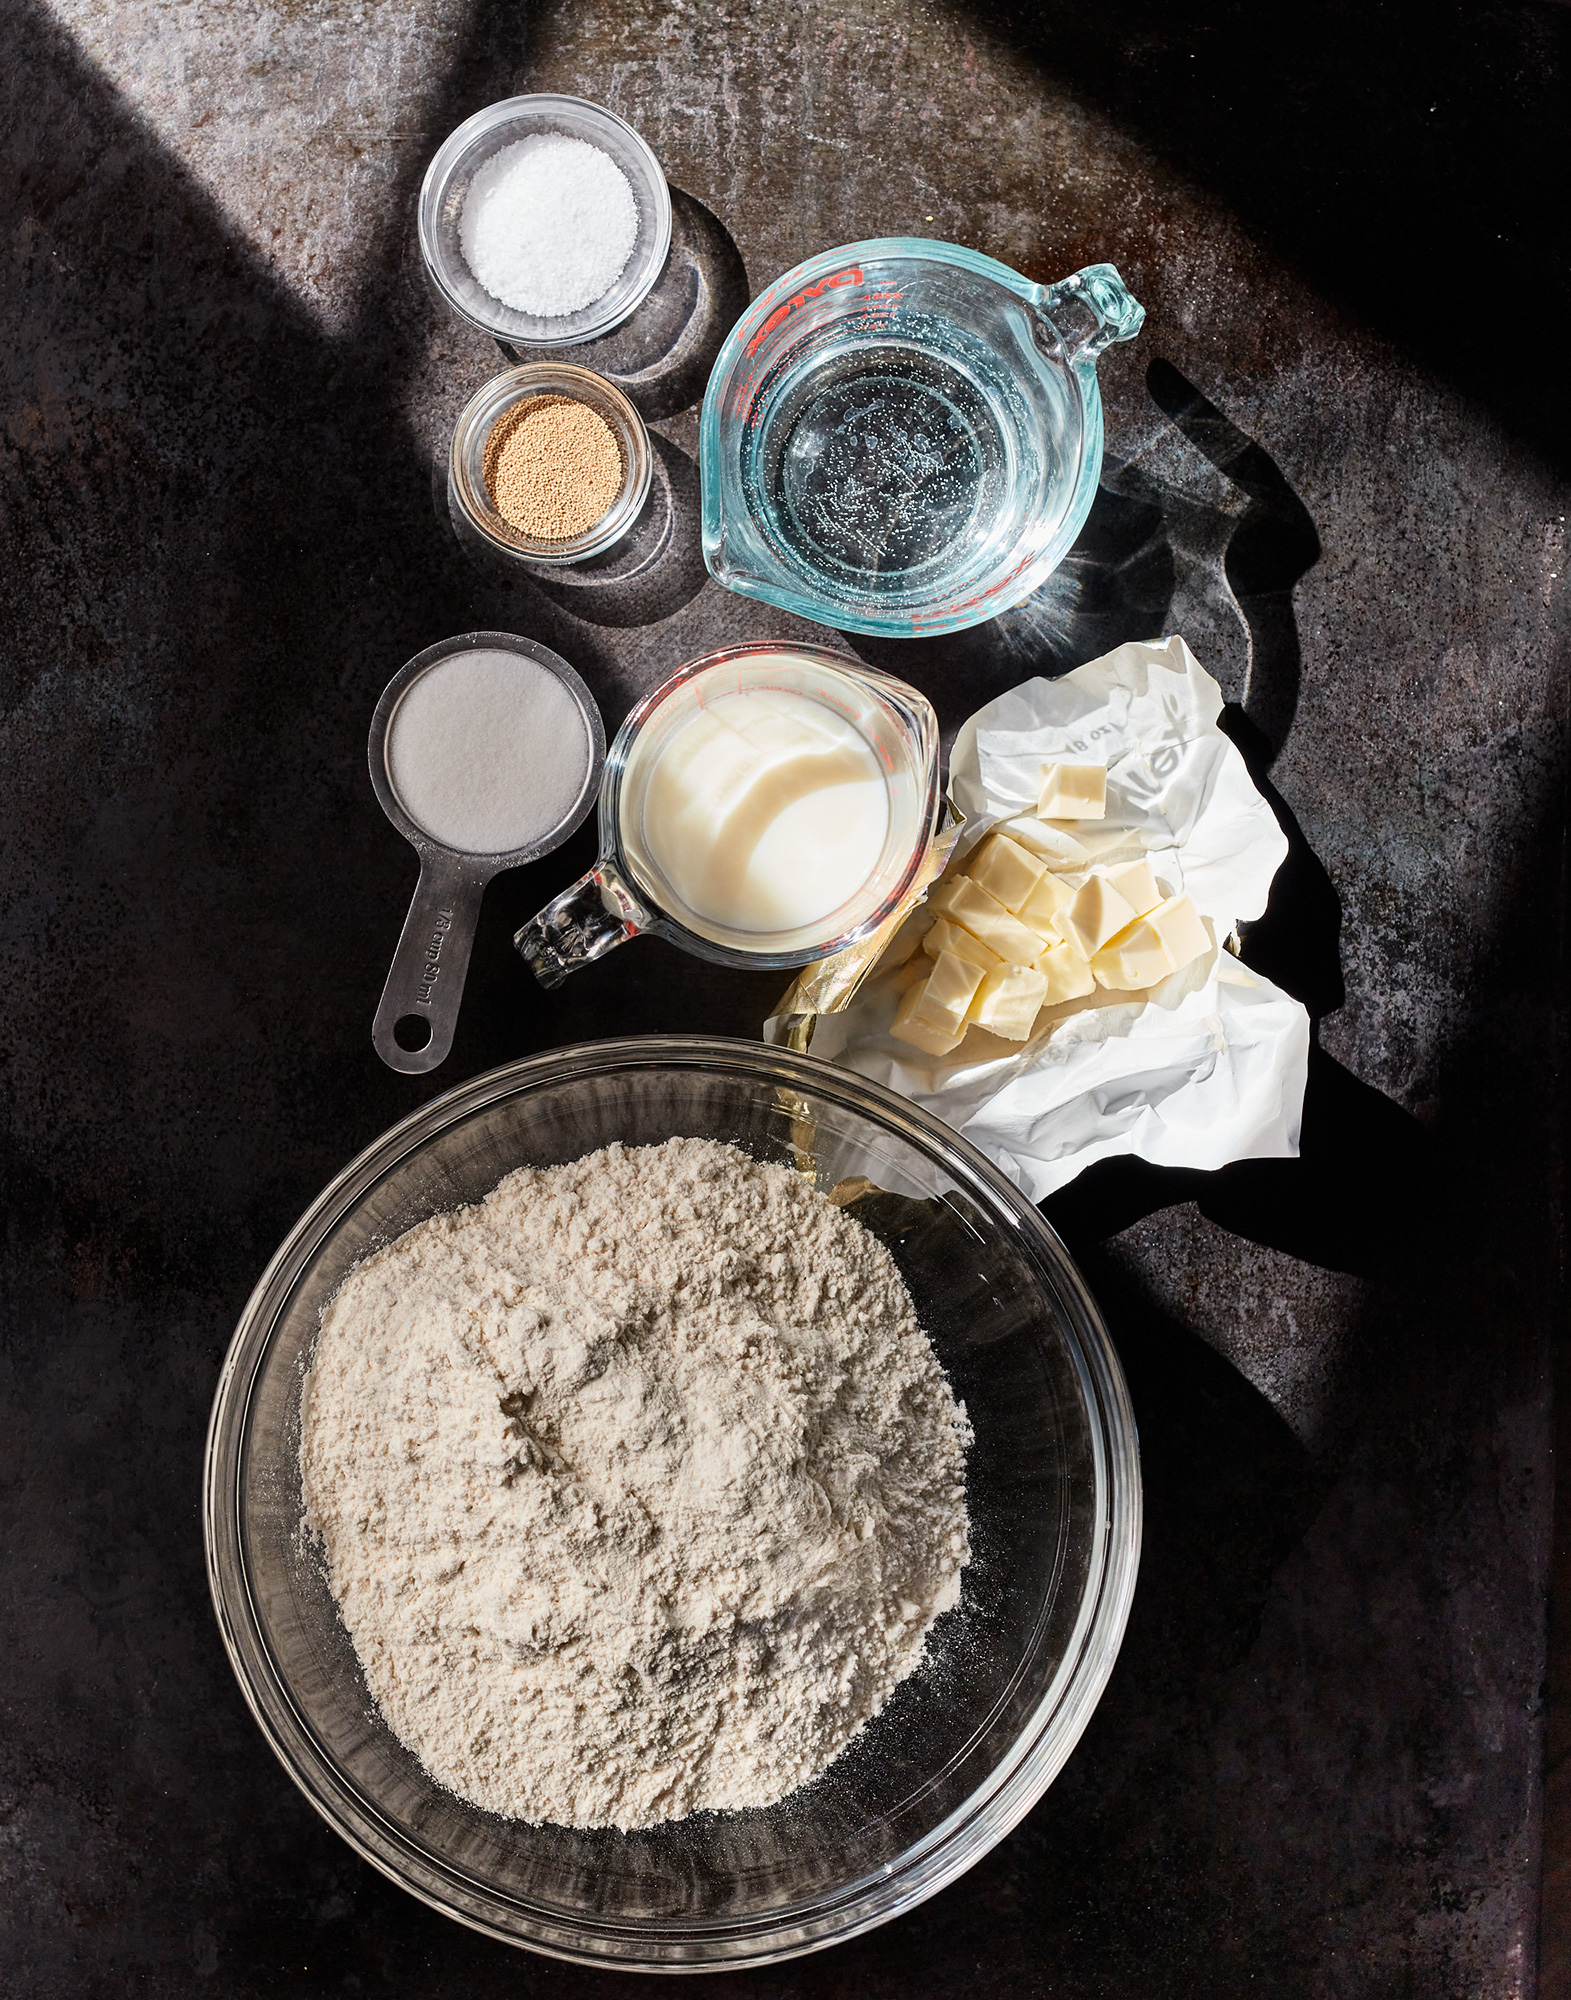 20210308_NYTC_JM_S02_mise-en-place_ingredients_0083